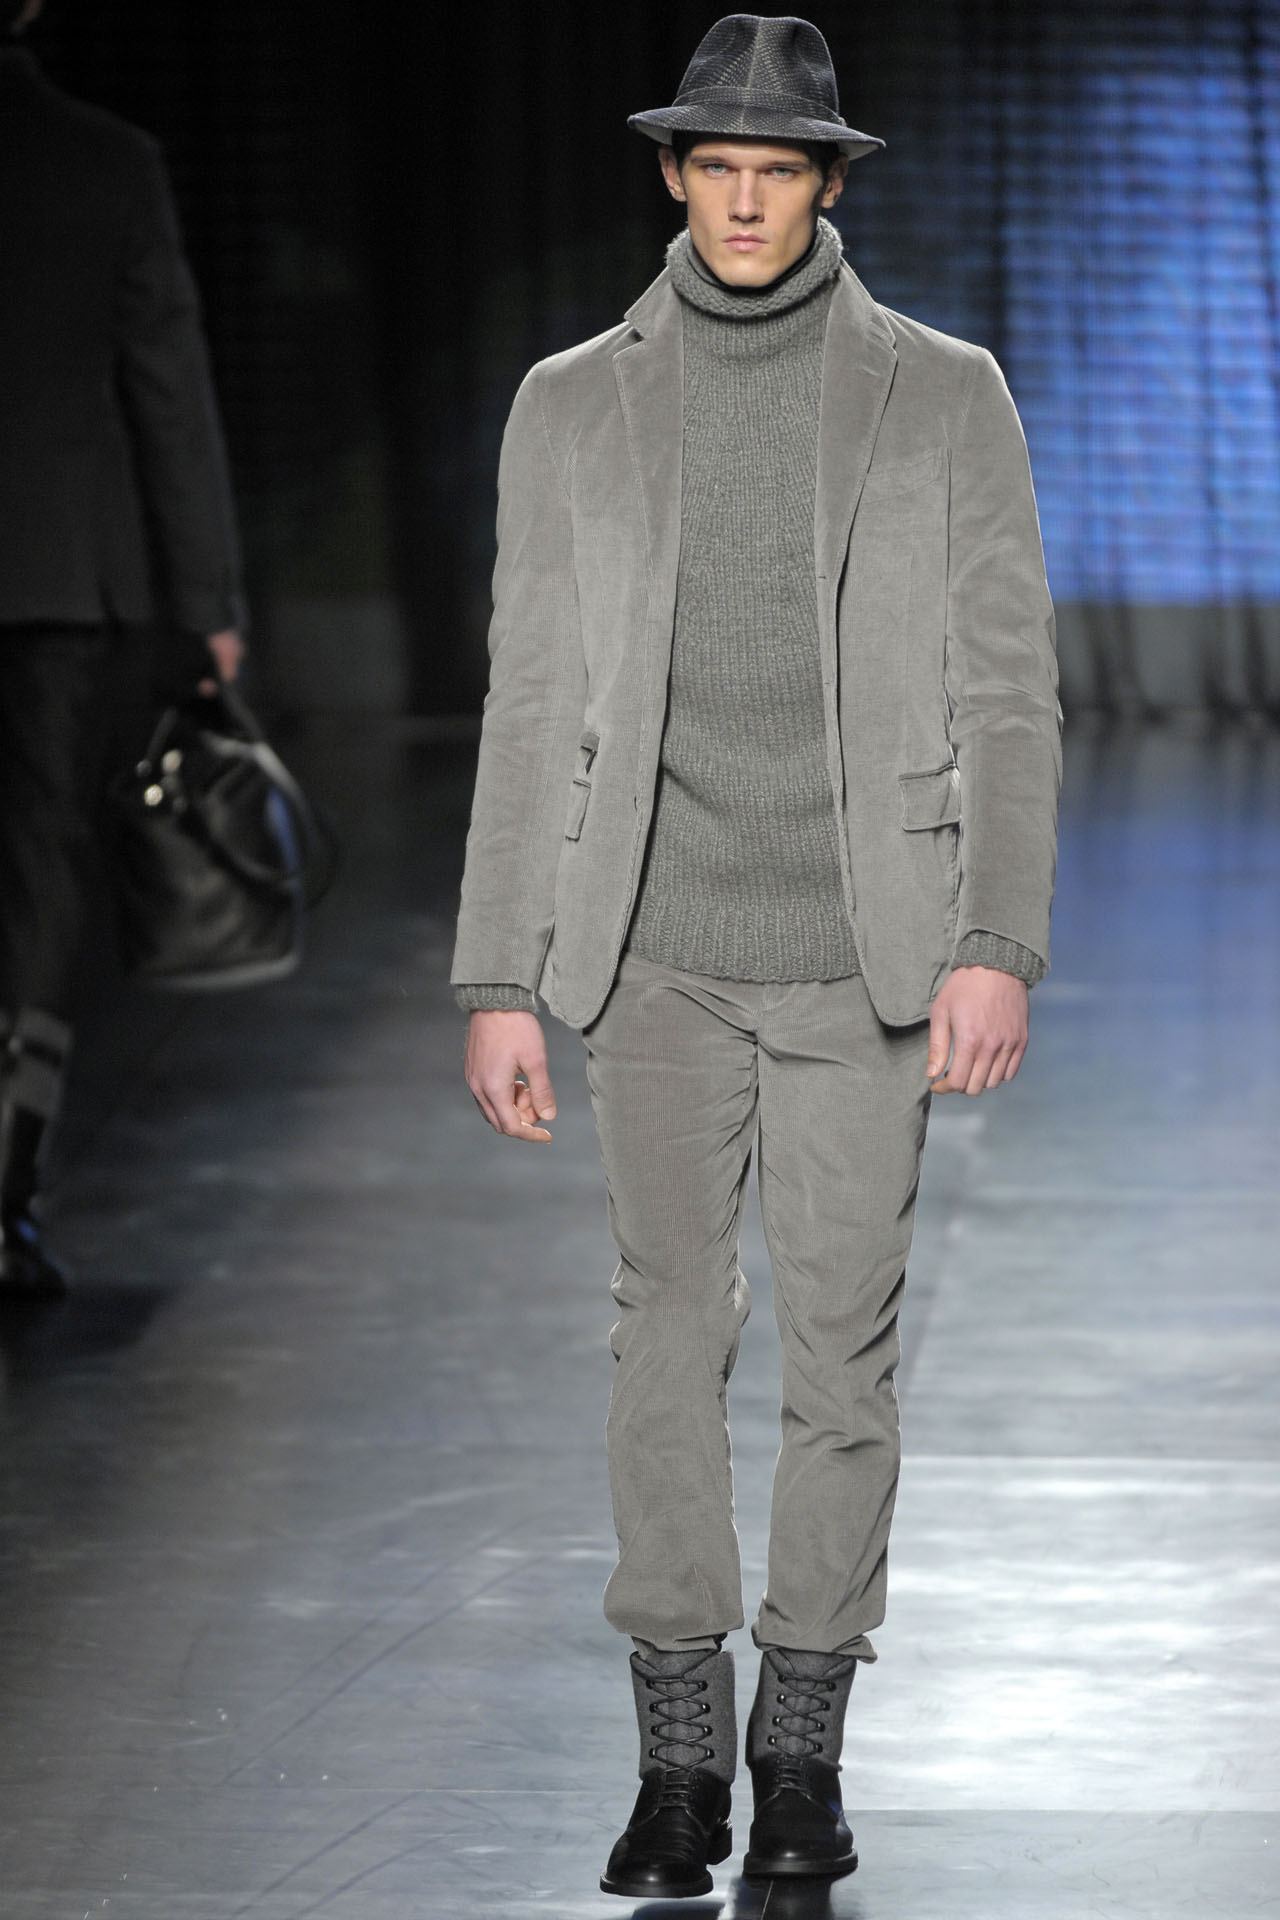 MILANO_UOMO_ january 2010_Ermernegildo_Zegna_MENSWEAR FALL WINTER 2010